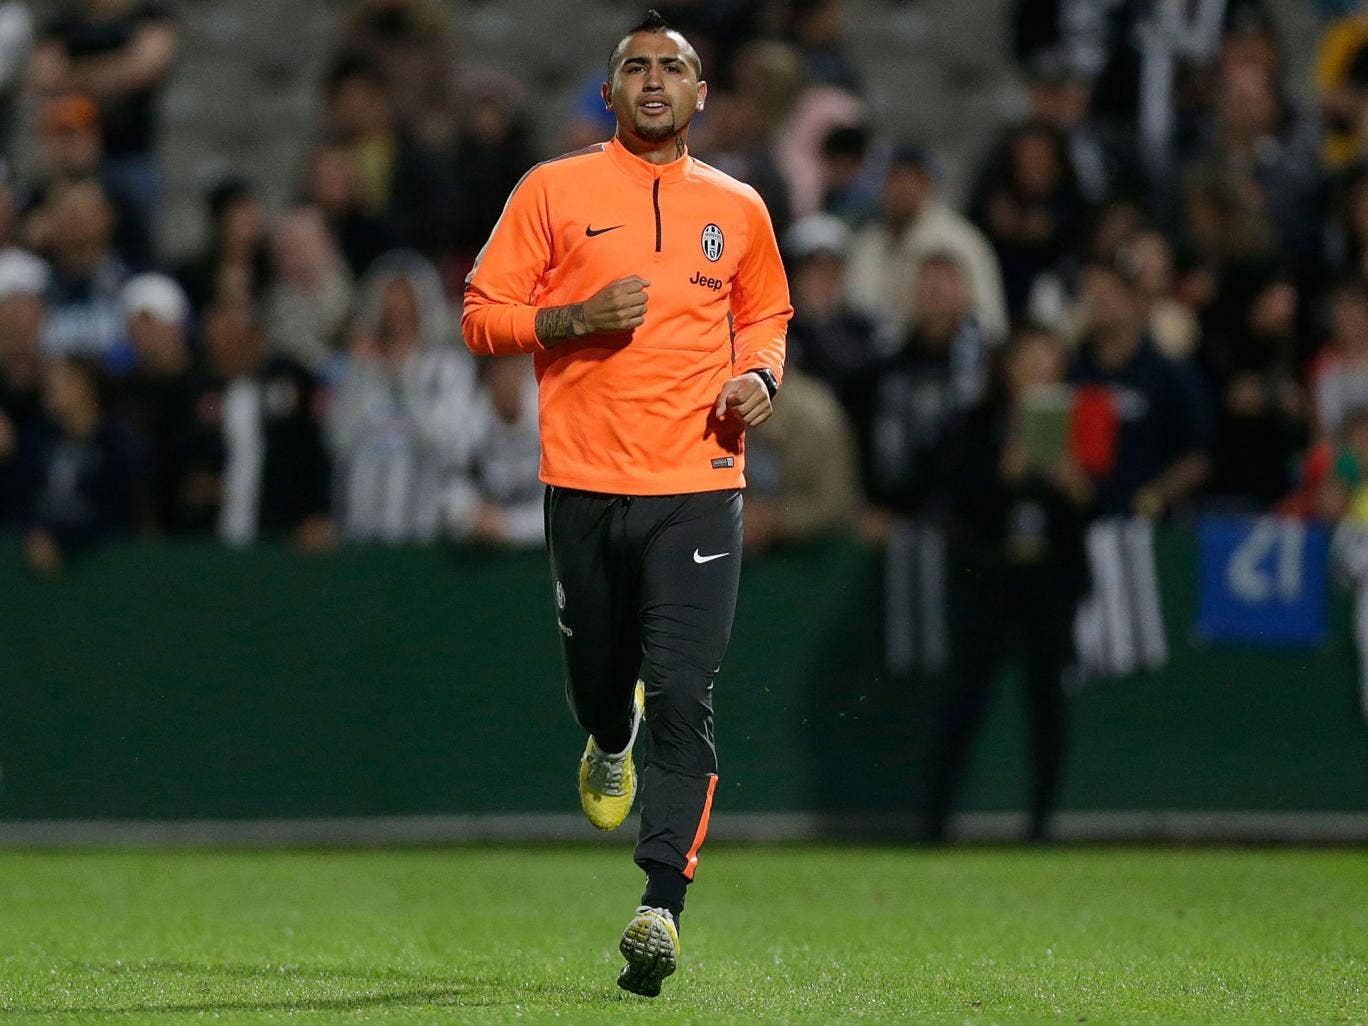 Arturo Vidal's agent is due to meet Louis van Gaal this week over a proposed move to Manchester United